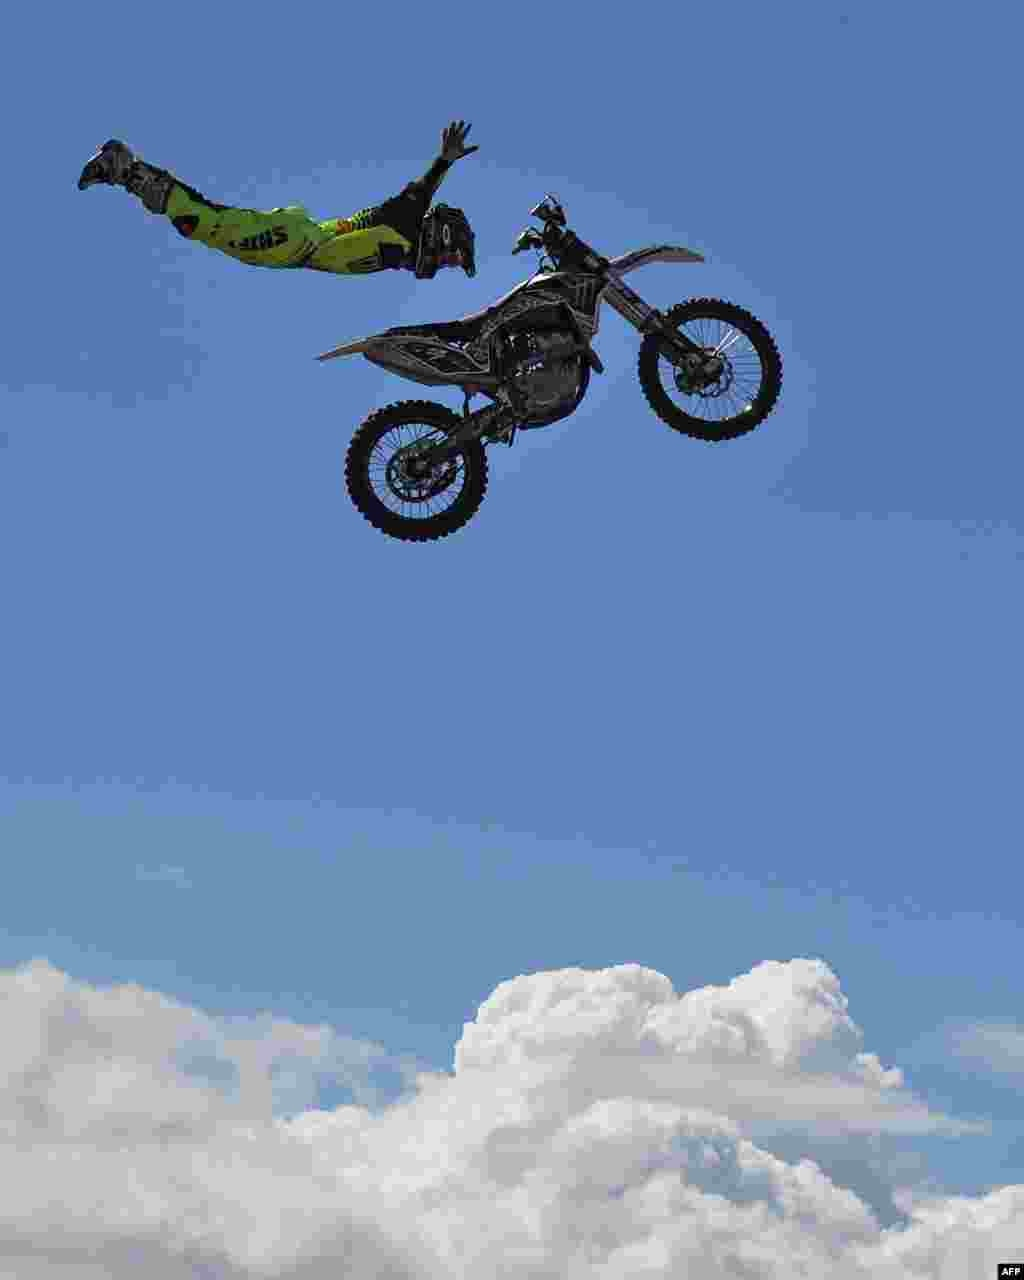 A Nitro Circus member performs above the crowd ahead of the third practice session of the Formula One Australian Grand Prix in Melbourne.